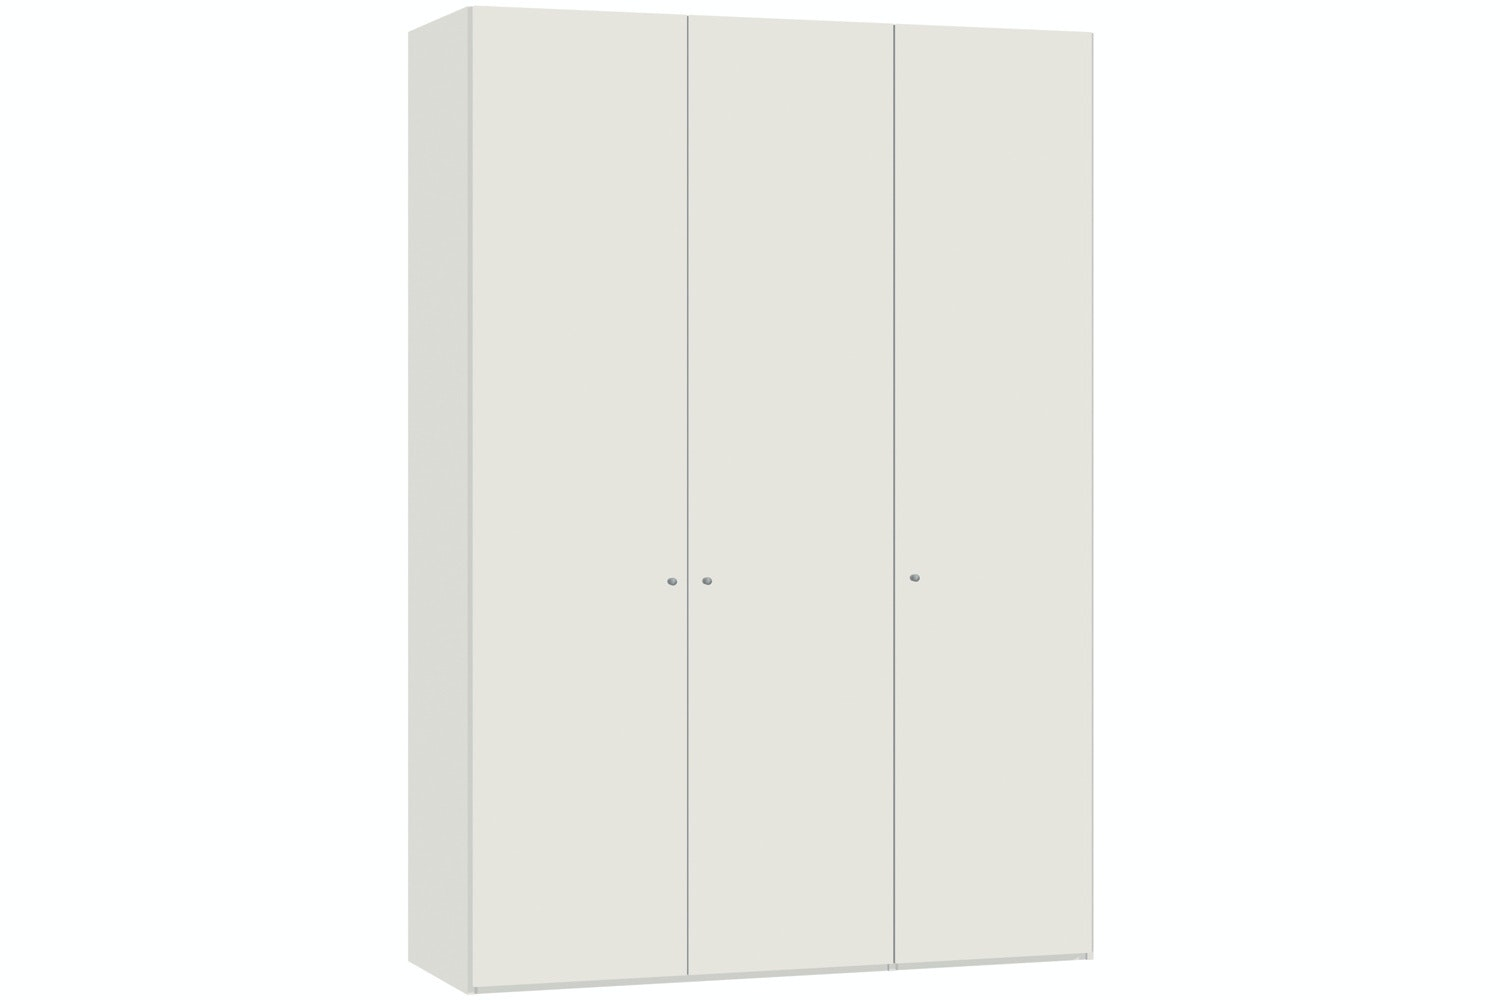 Yasmin Hinged 3 Door Wardrobe 152Cm | White High Gloss